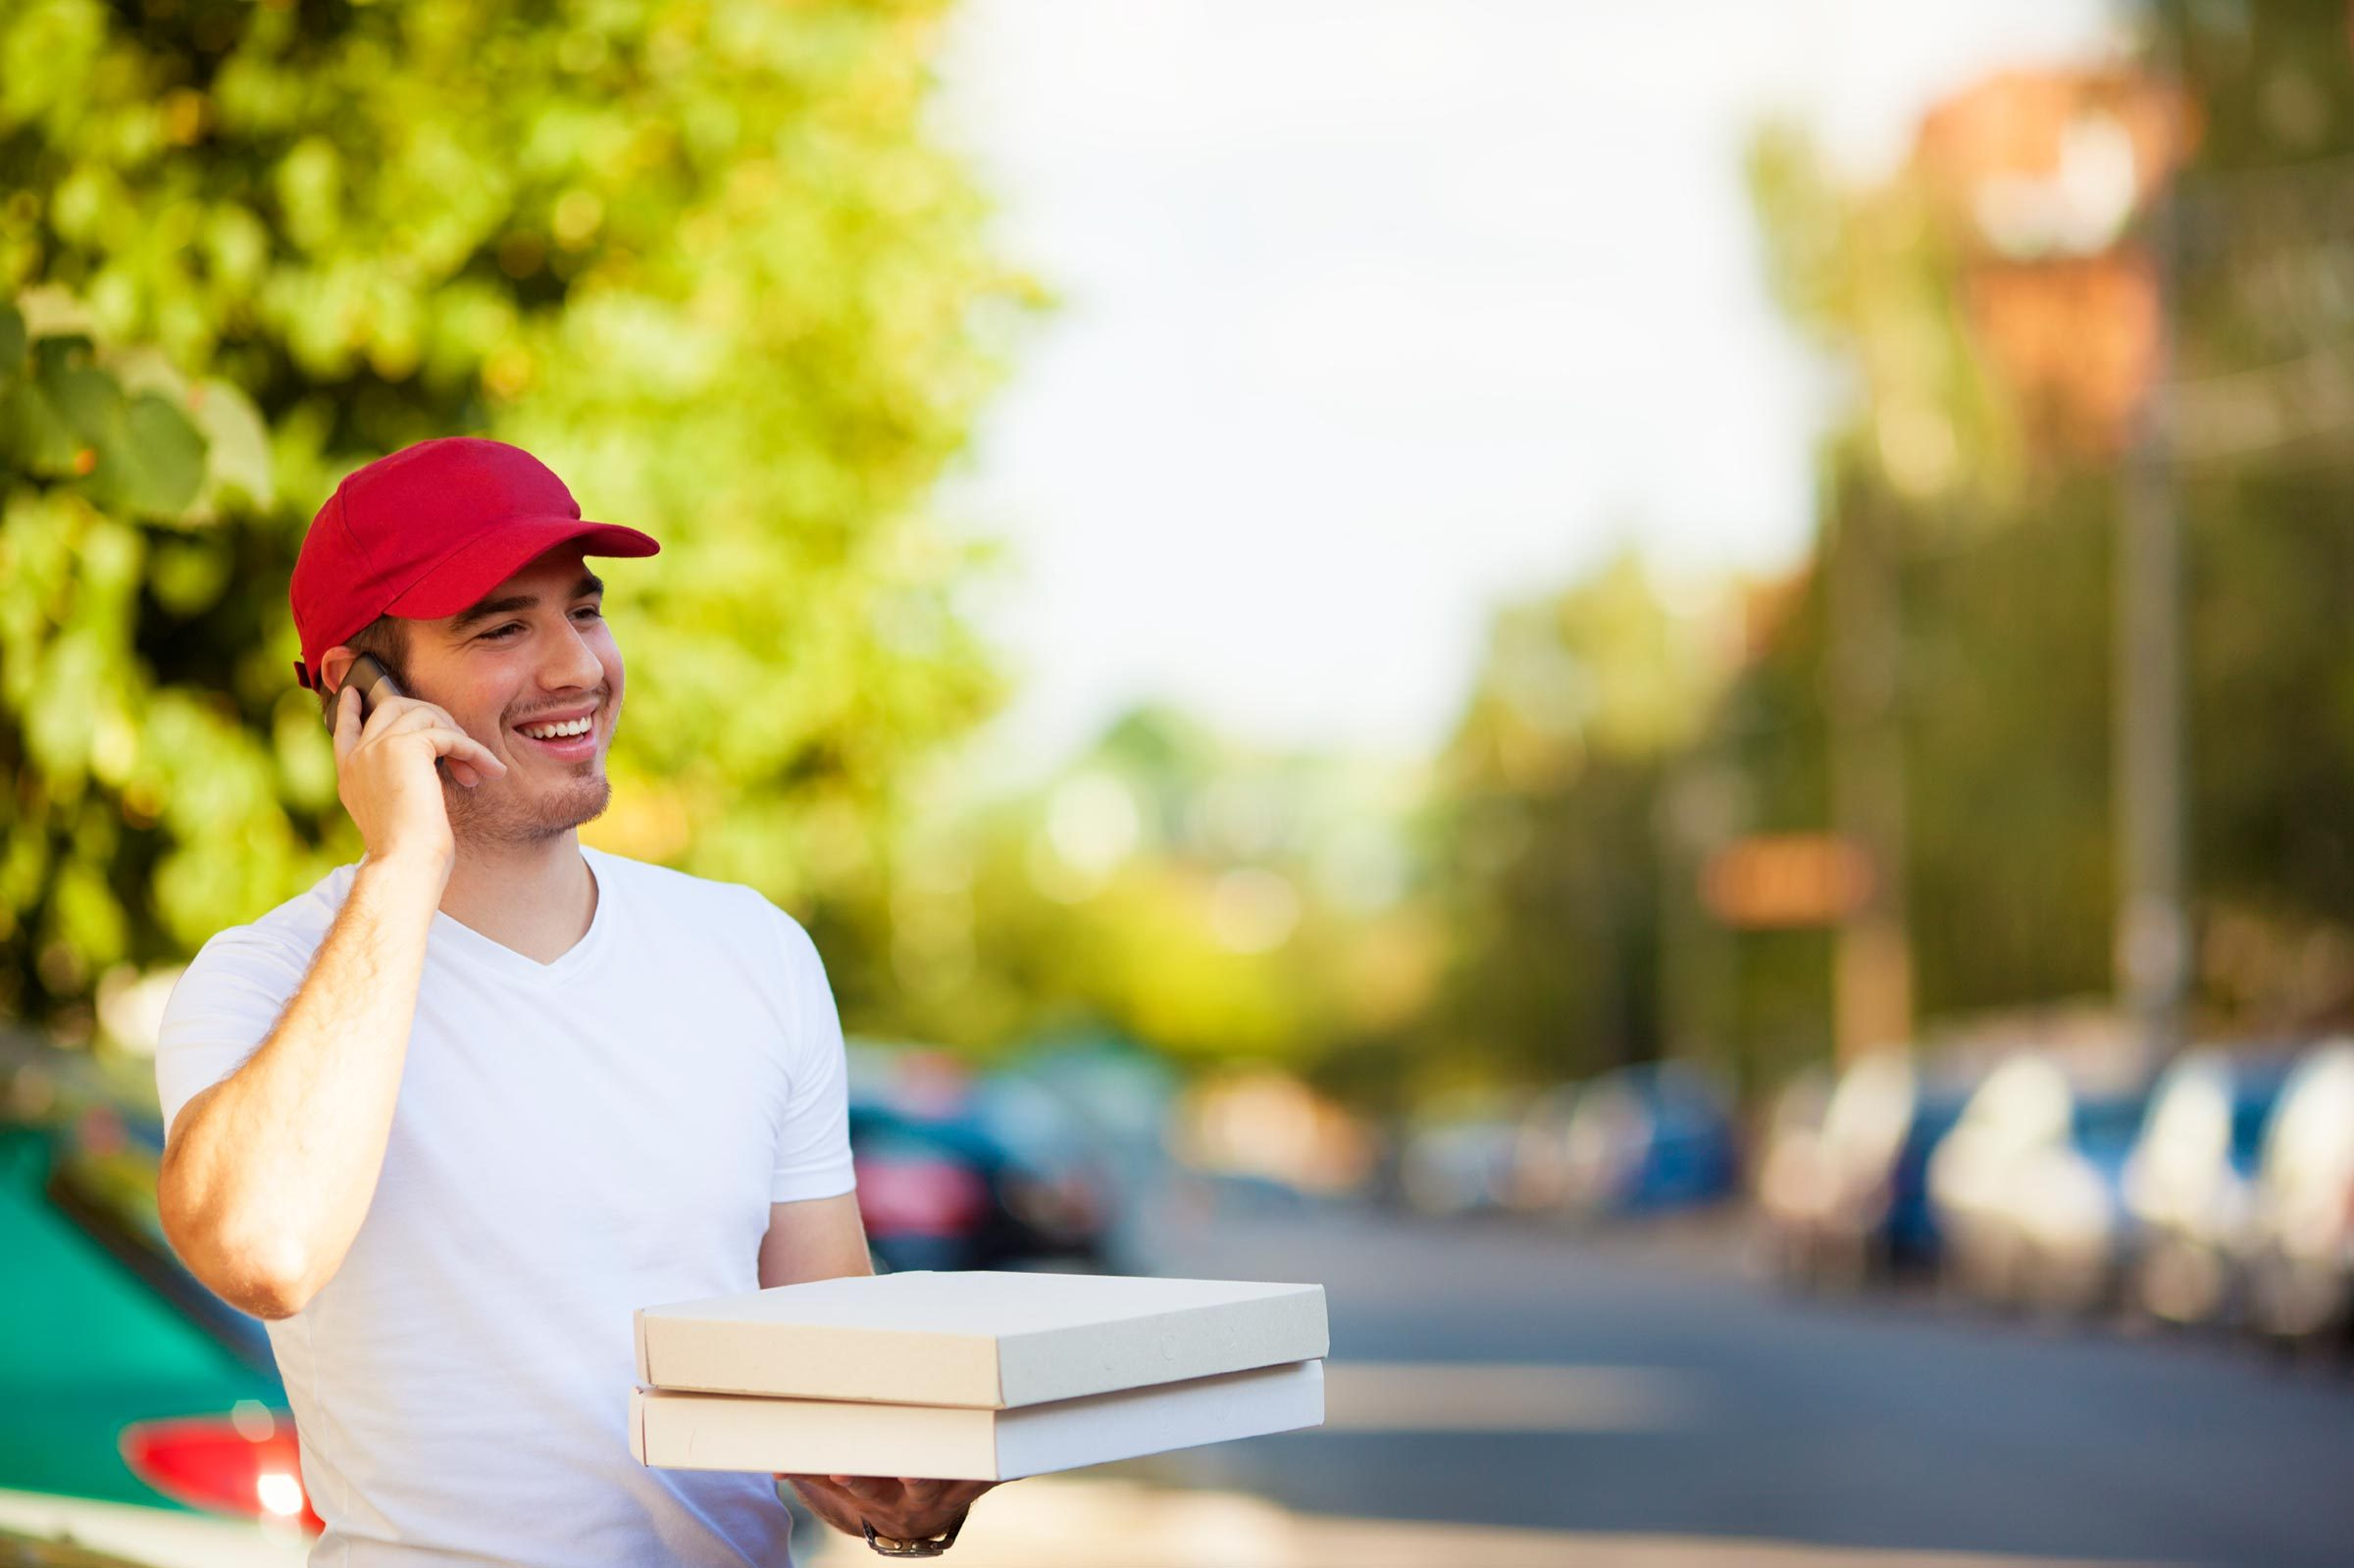 27 Things Your Pizza Guy Won't Tell You | Reader's Digest